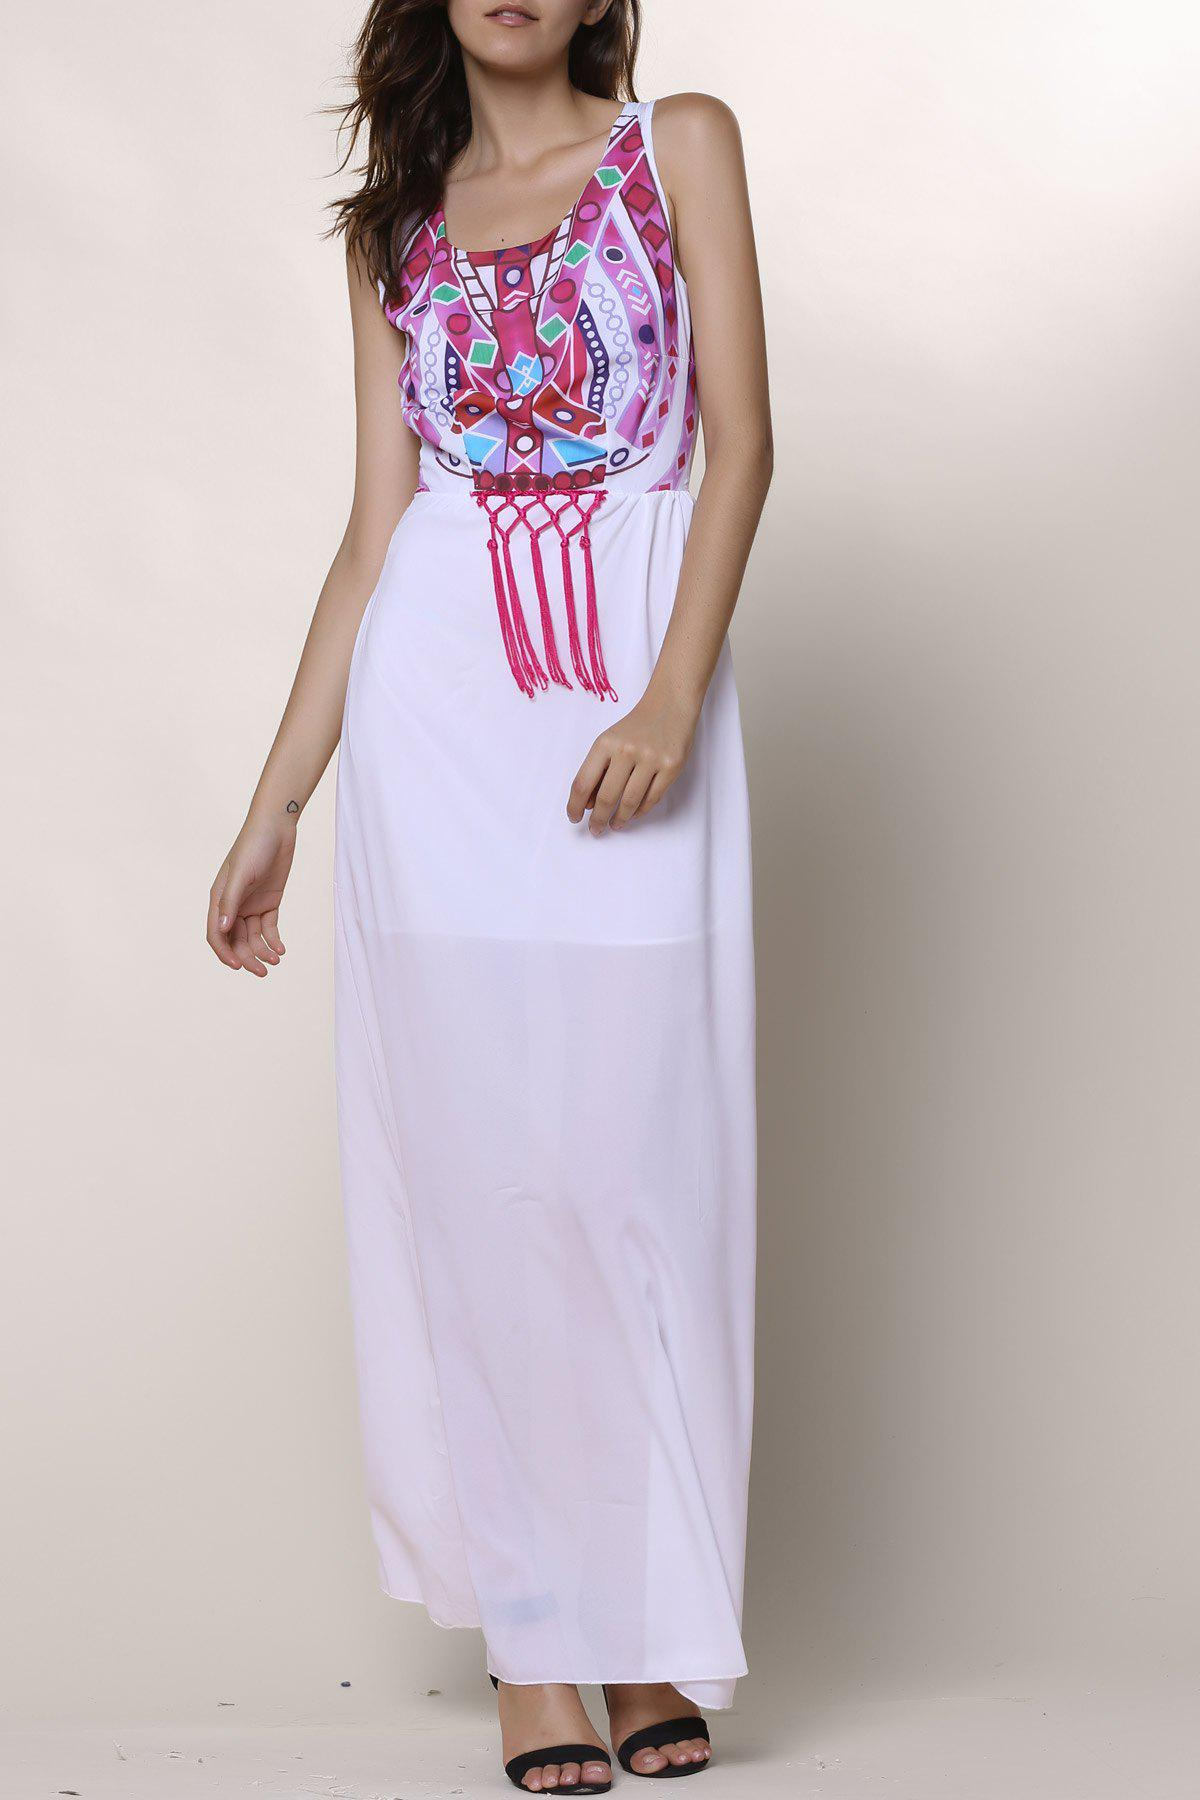 Ethnic Style Sleeveless Round Collar Printed Women's Dress - WHITE L